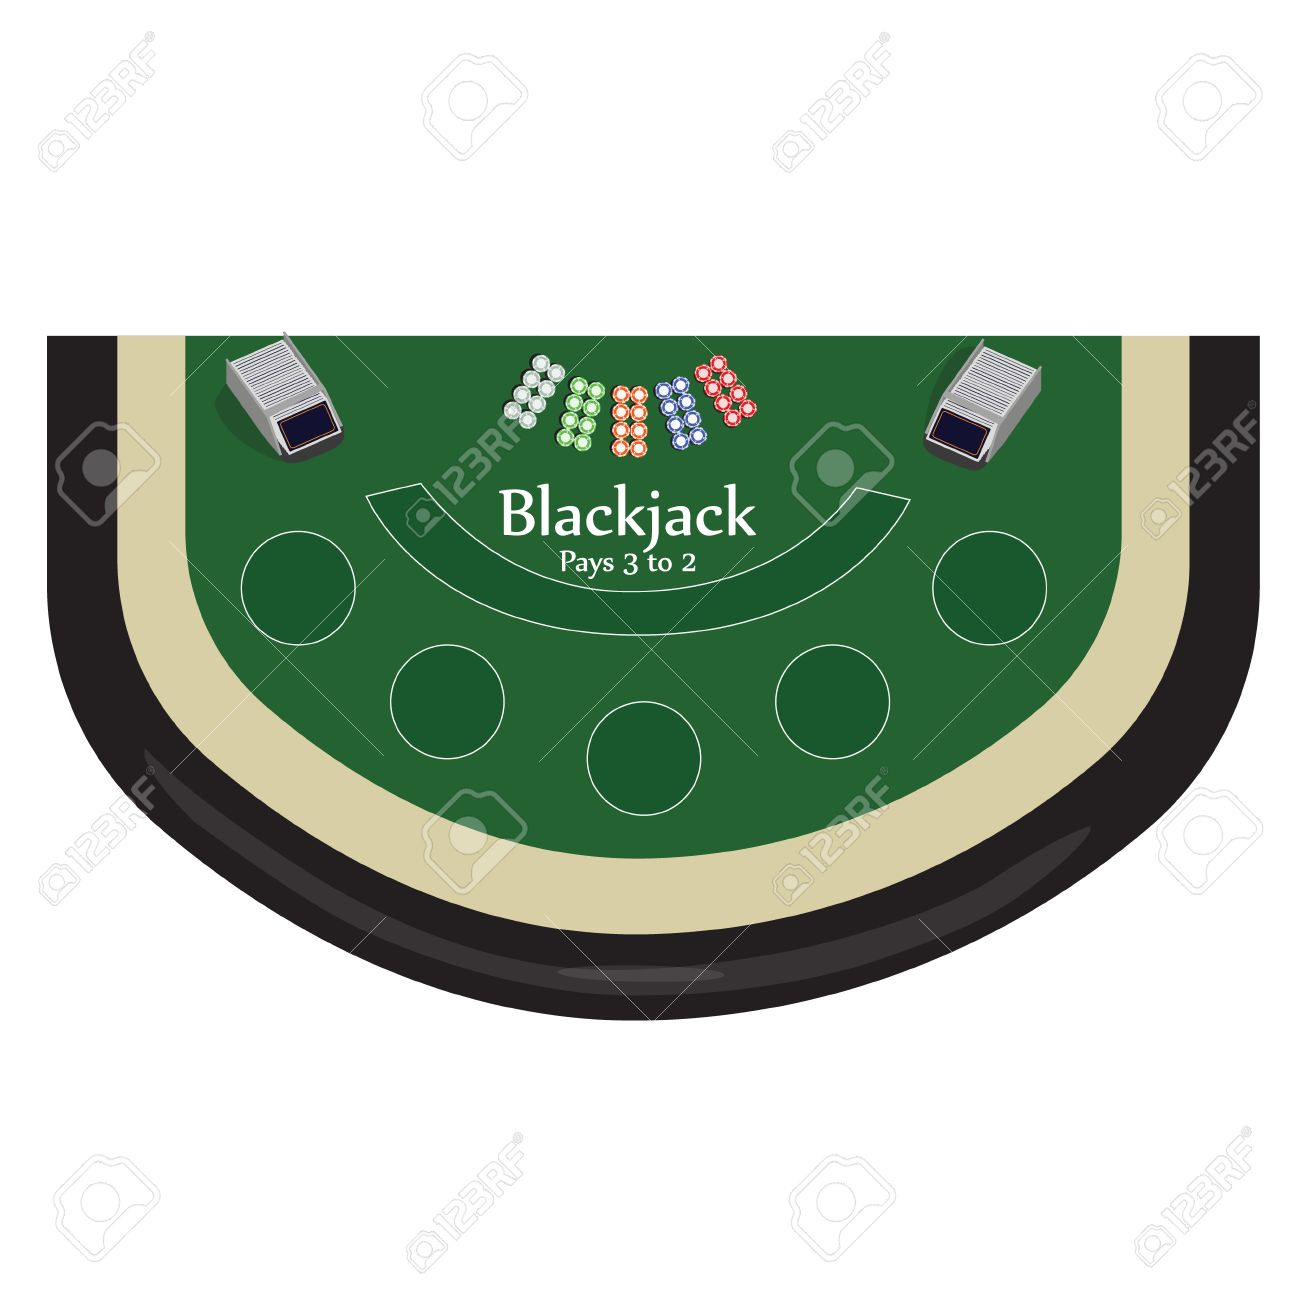 Merveilleux Vector   Vector Illustration Blackjack Table With Chips Top View. Casino  Gambling Game